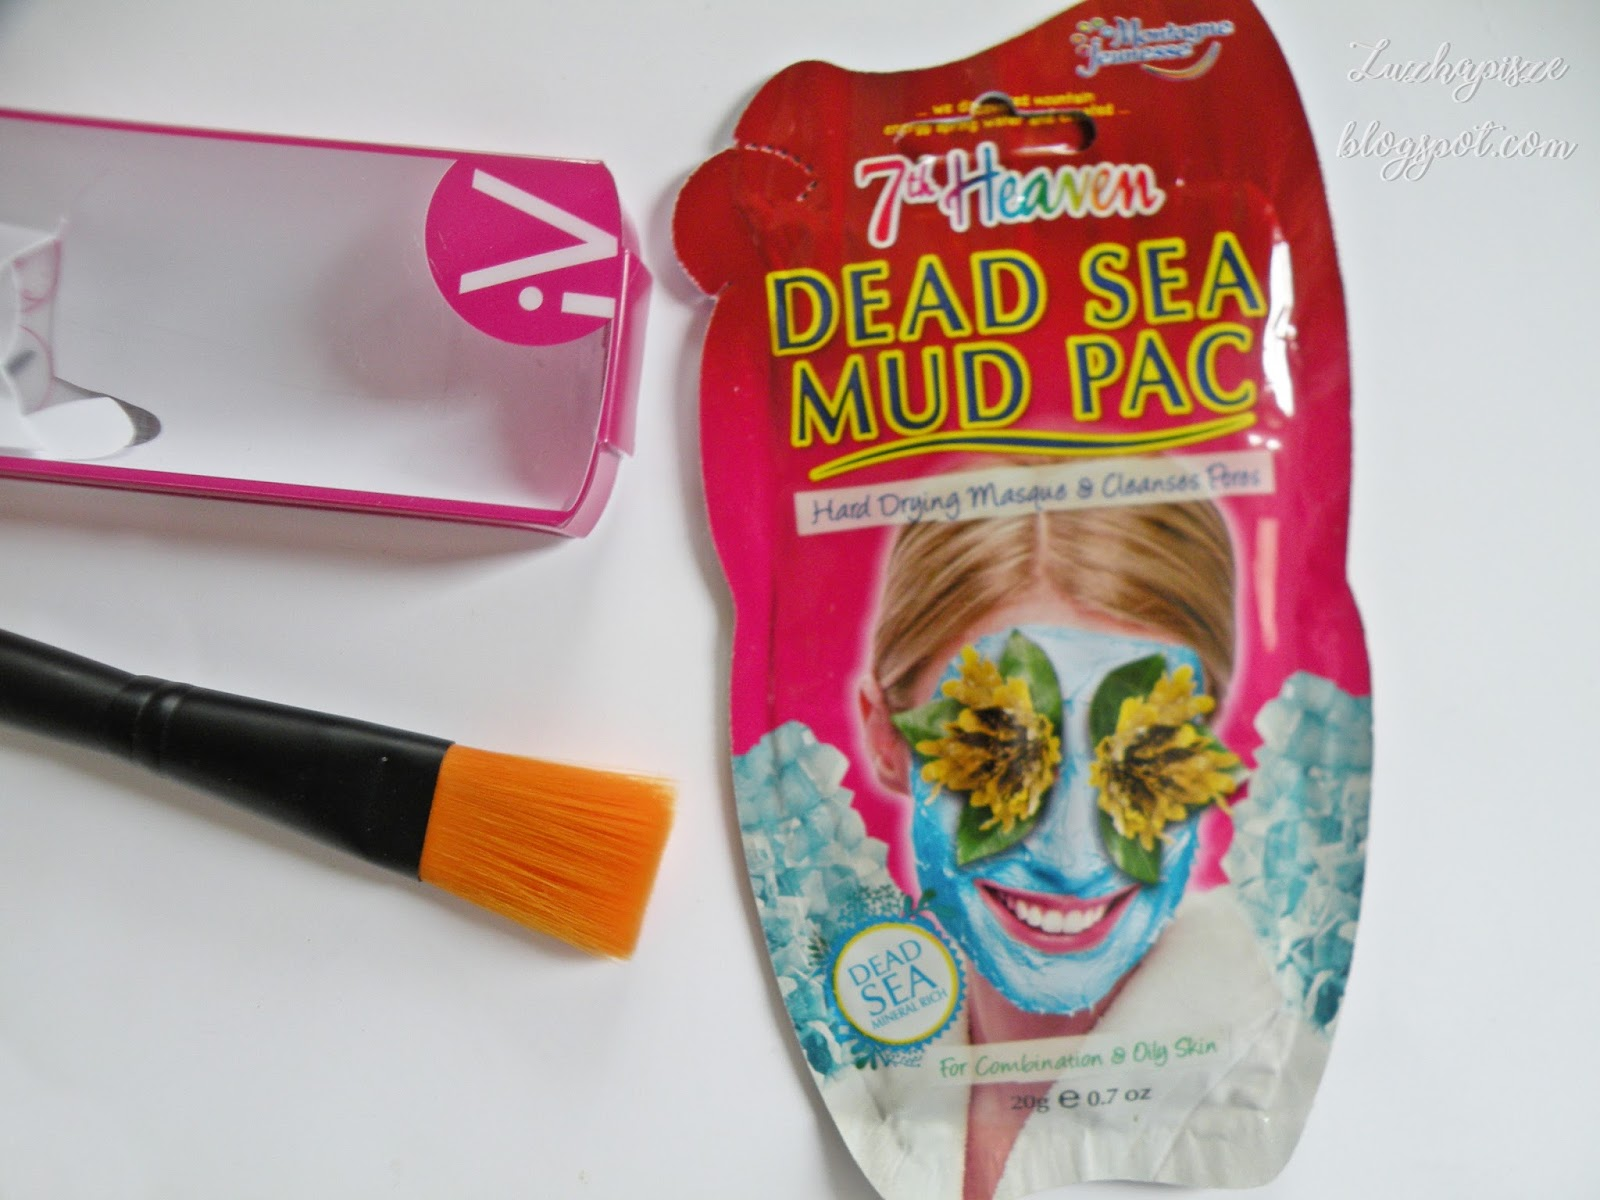 Dead Sea Mud Pac 7th Heaven